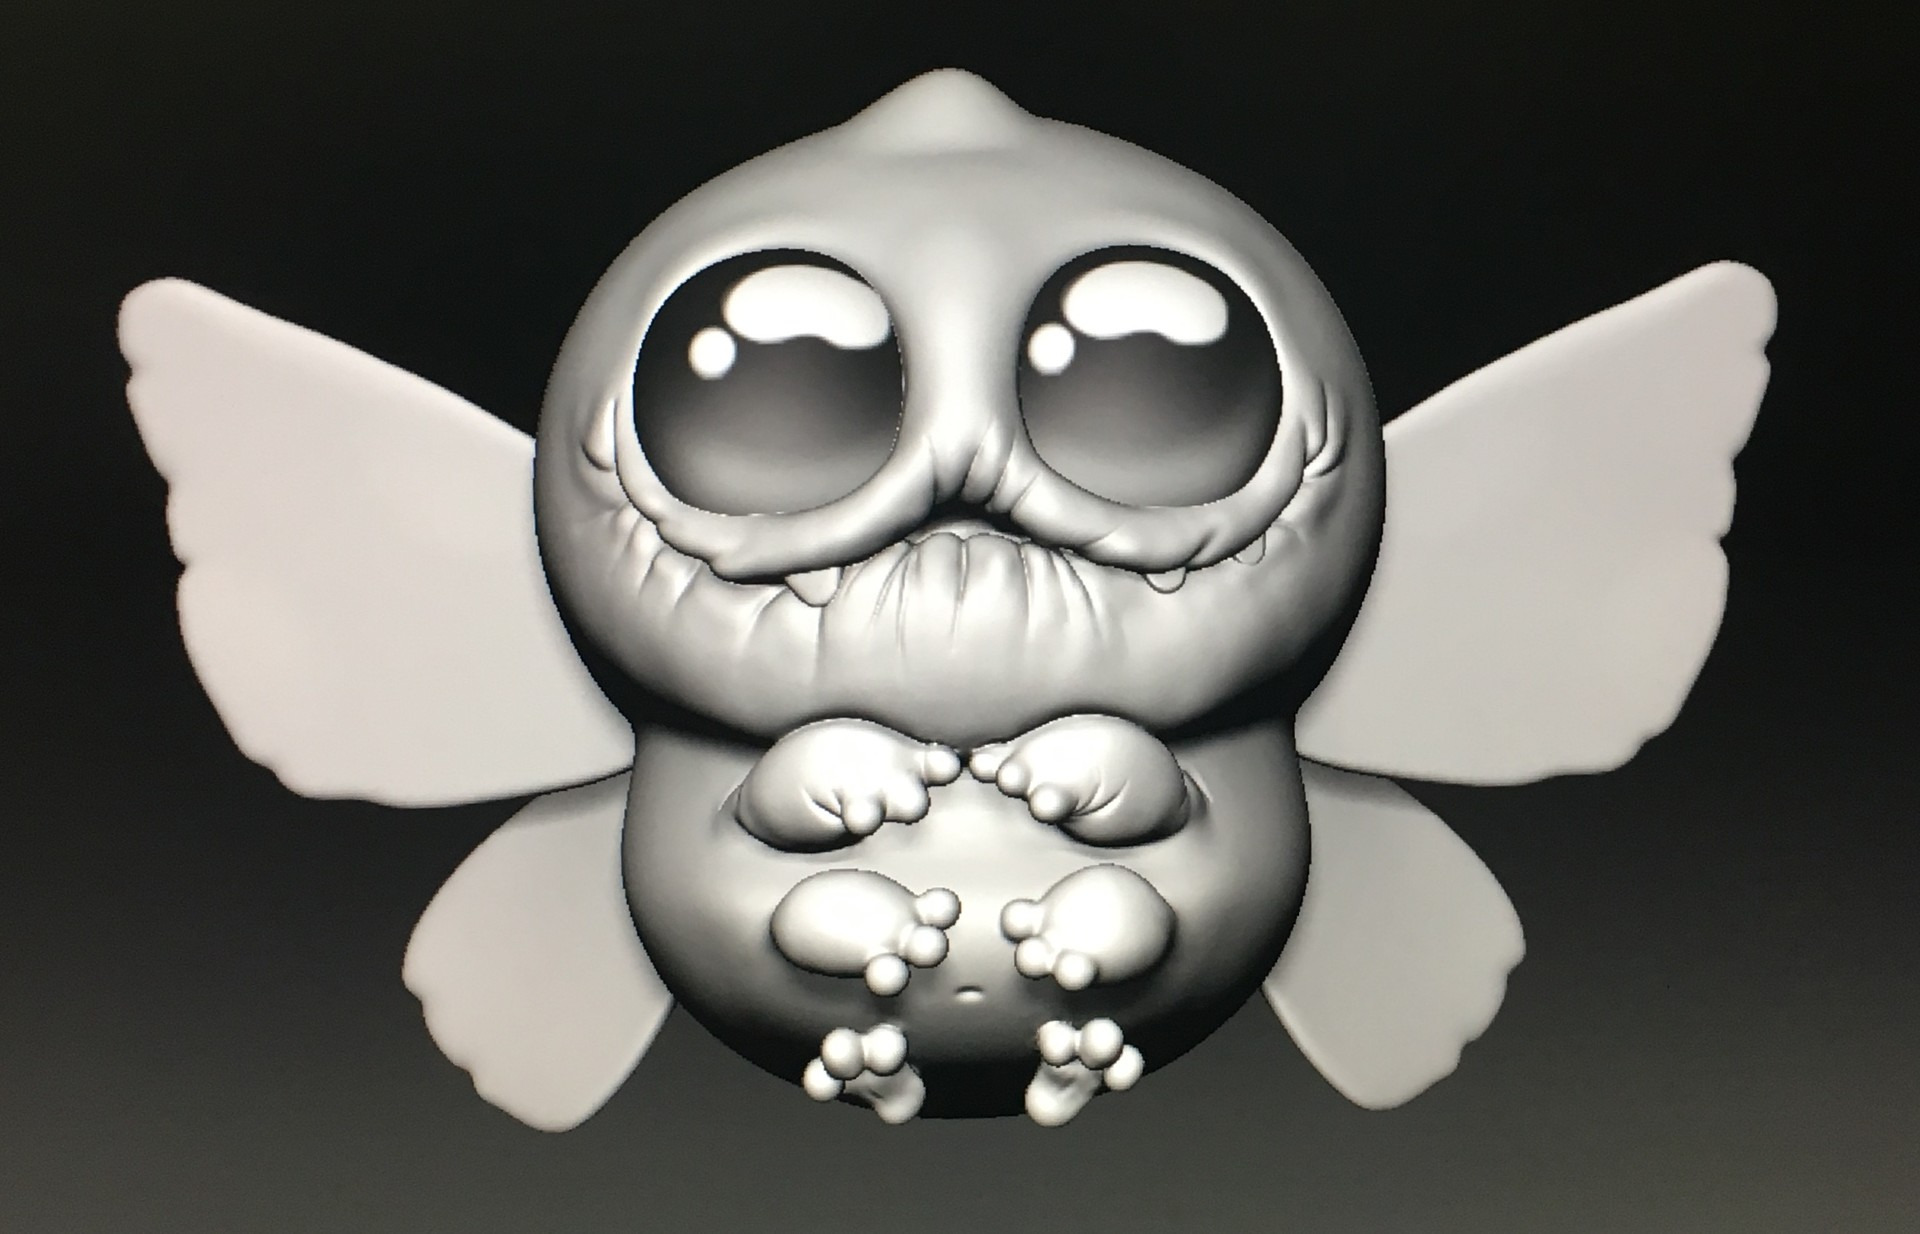 WIP - 3D sculpt based on Chris Ryniak concept art